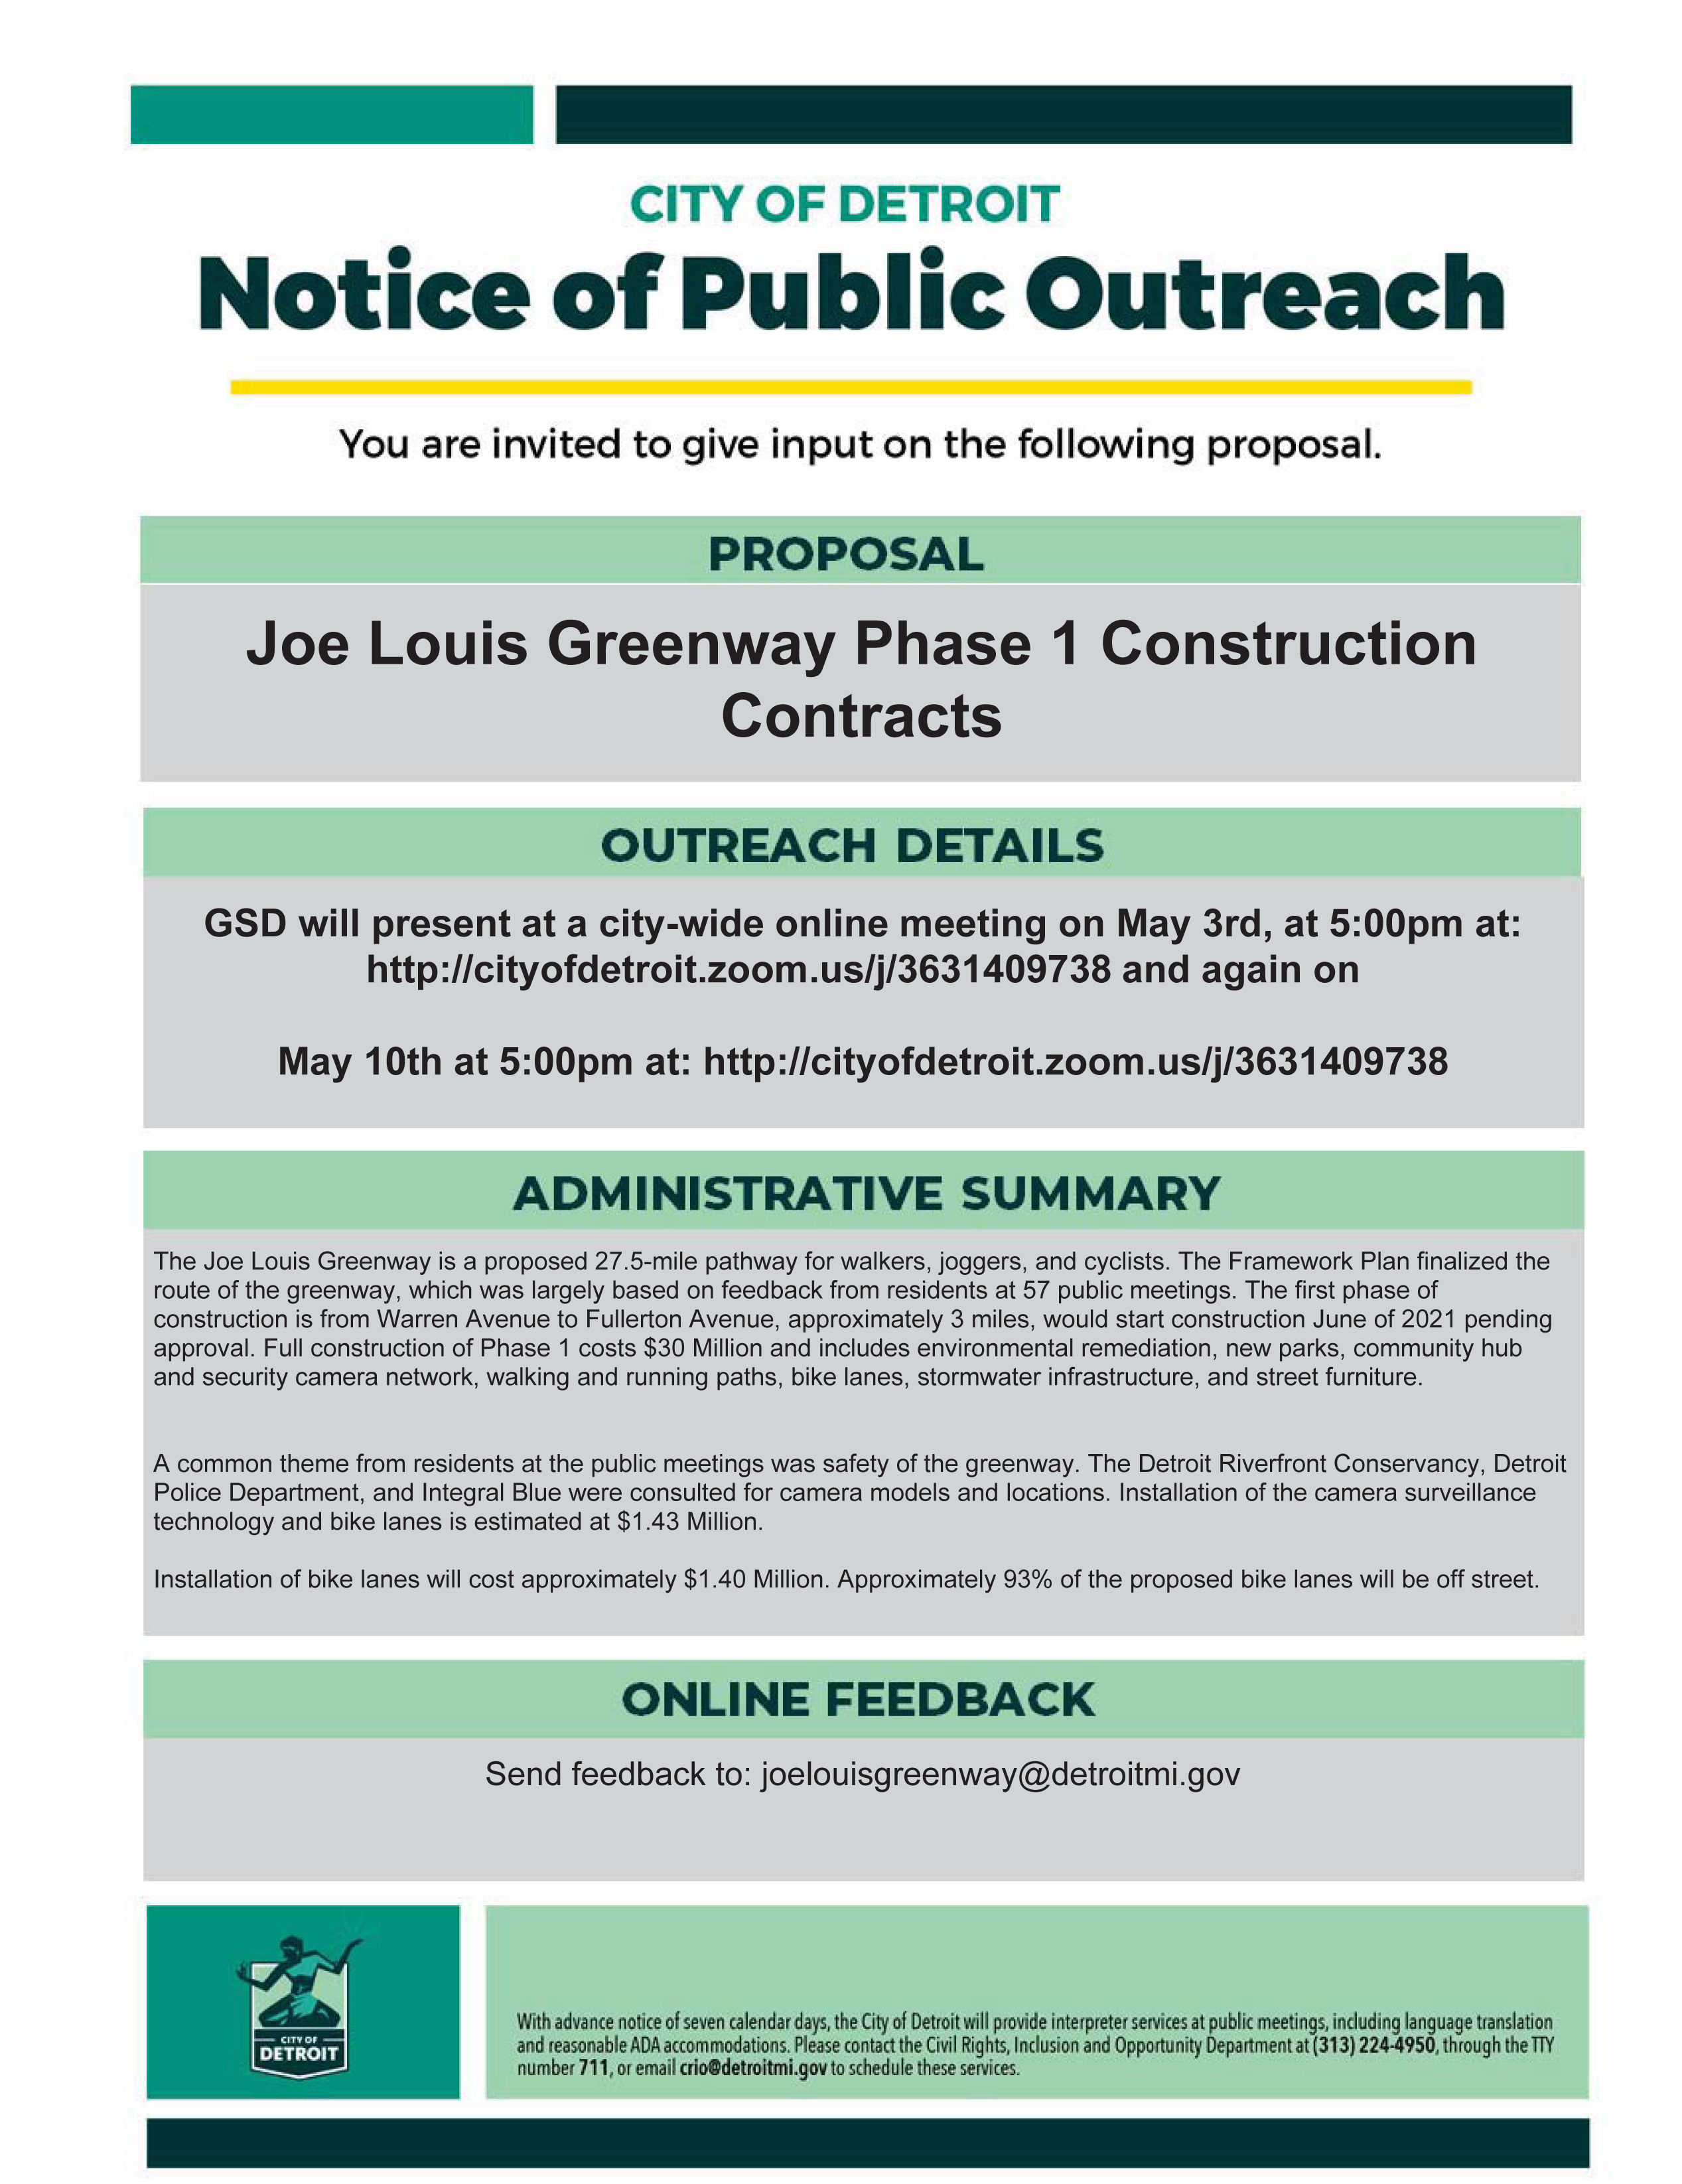 Notice of Public Outreach: Joe Louis Greenway Phase 1 Construction Contracts